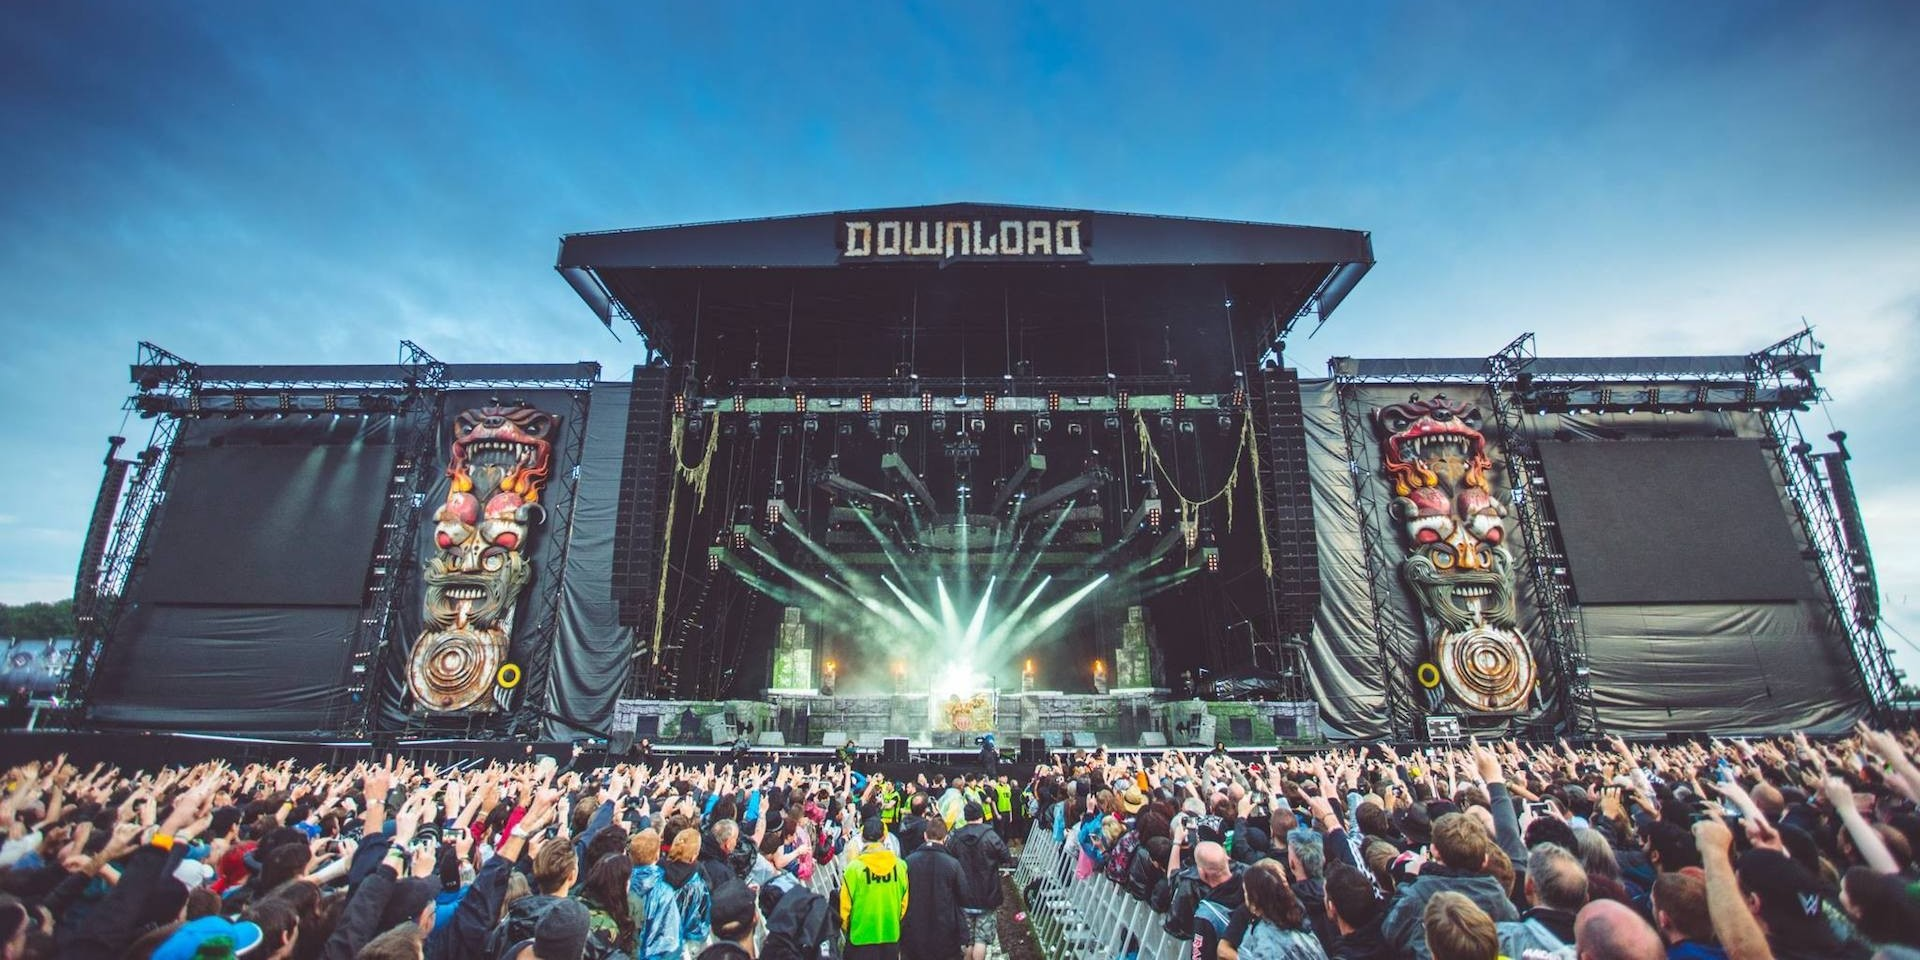 Download Festival to expand in Australia in 2019 with return to Melbourne and debut in Sydney